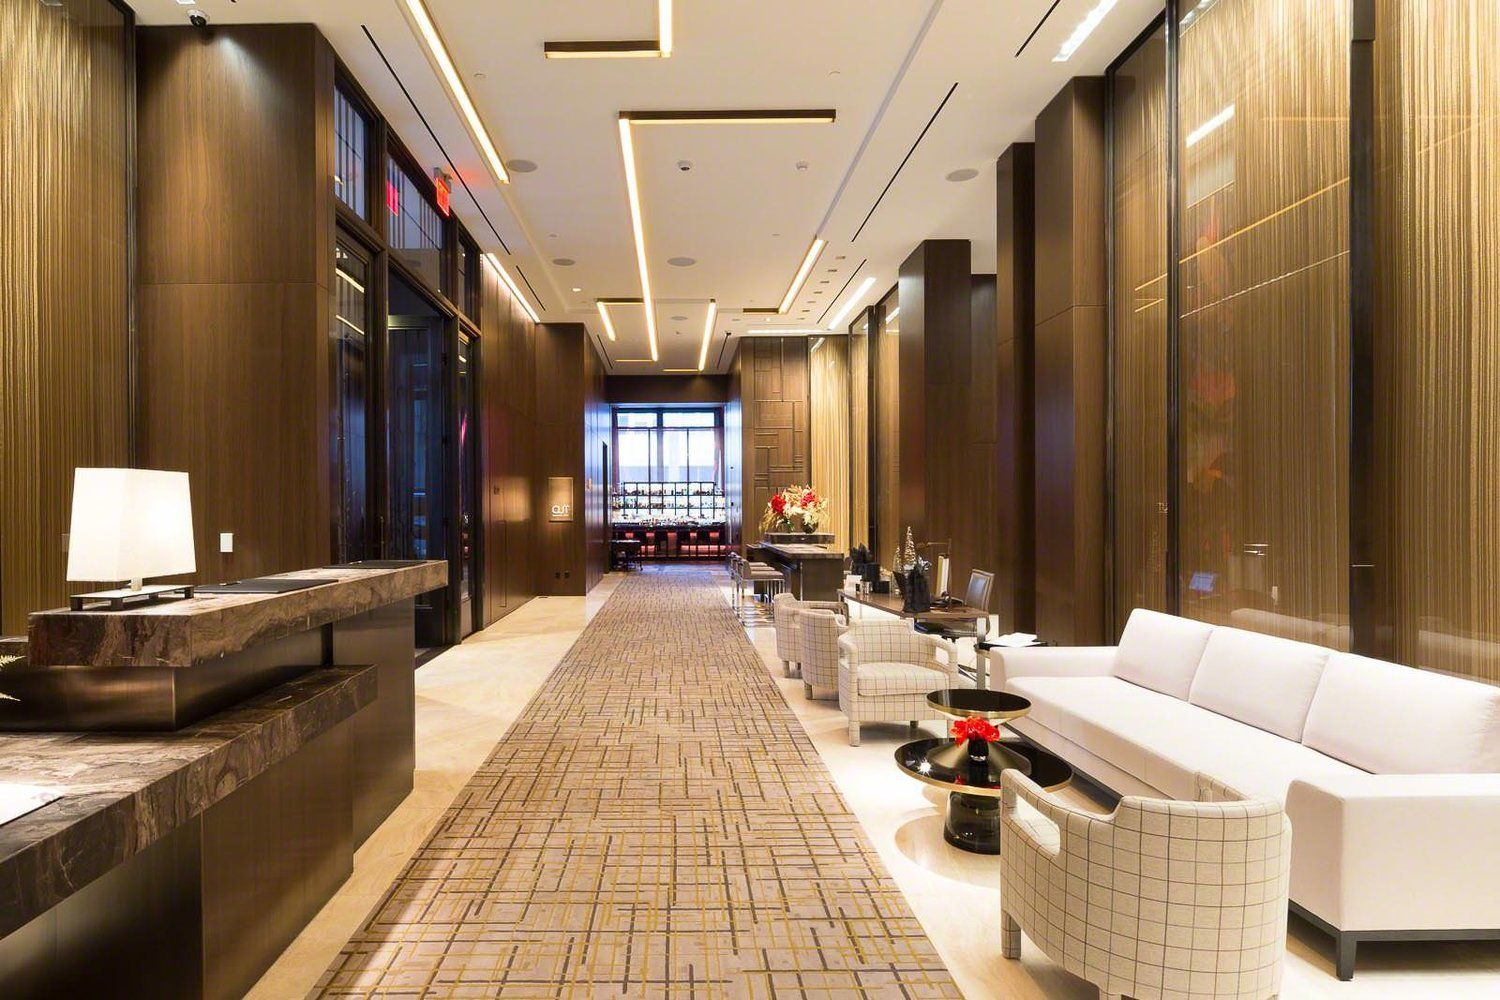 Hospitality project four seasons hotel downtown new york for Design hotel usa